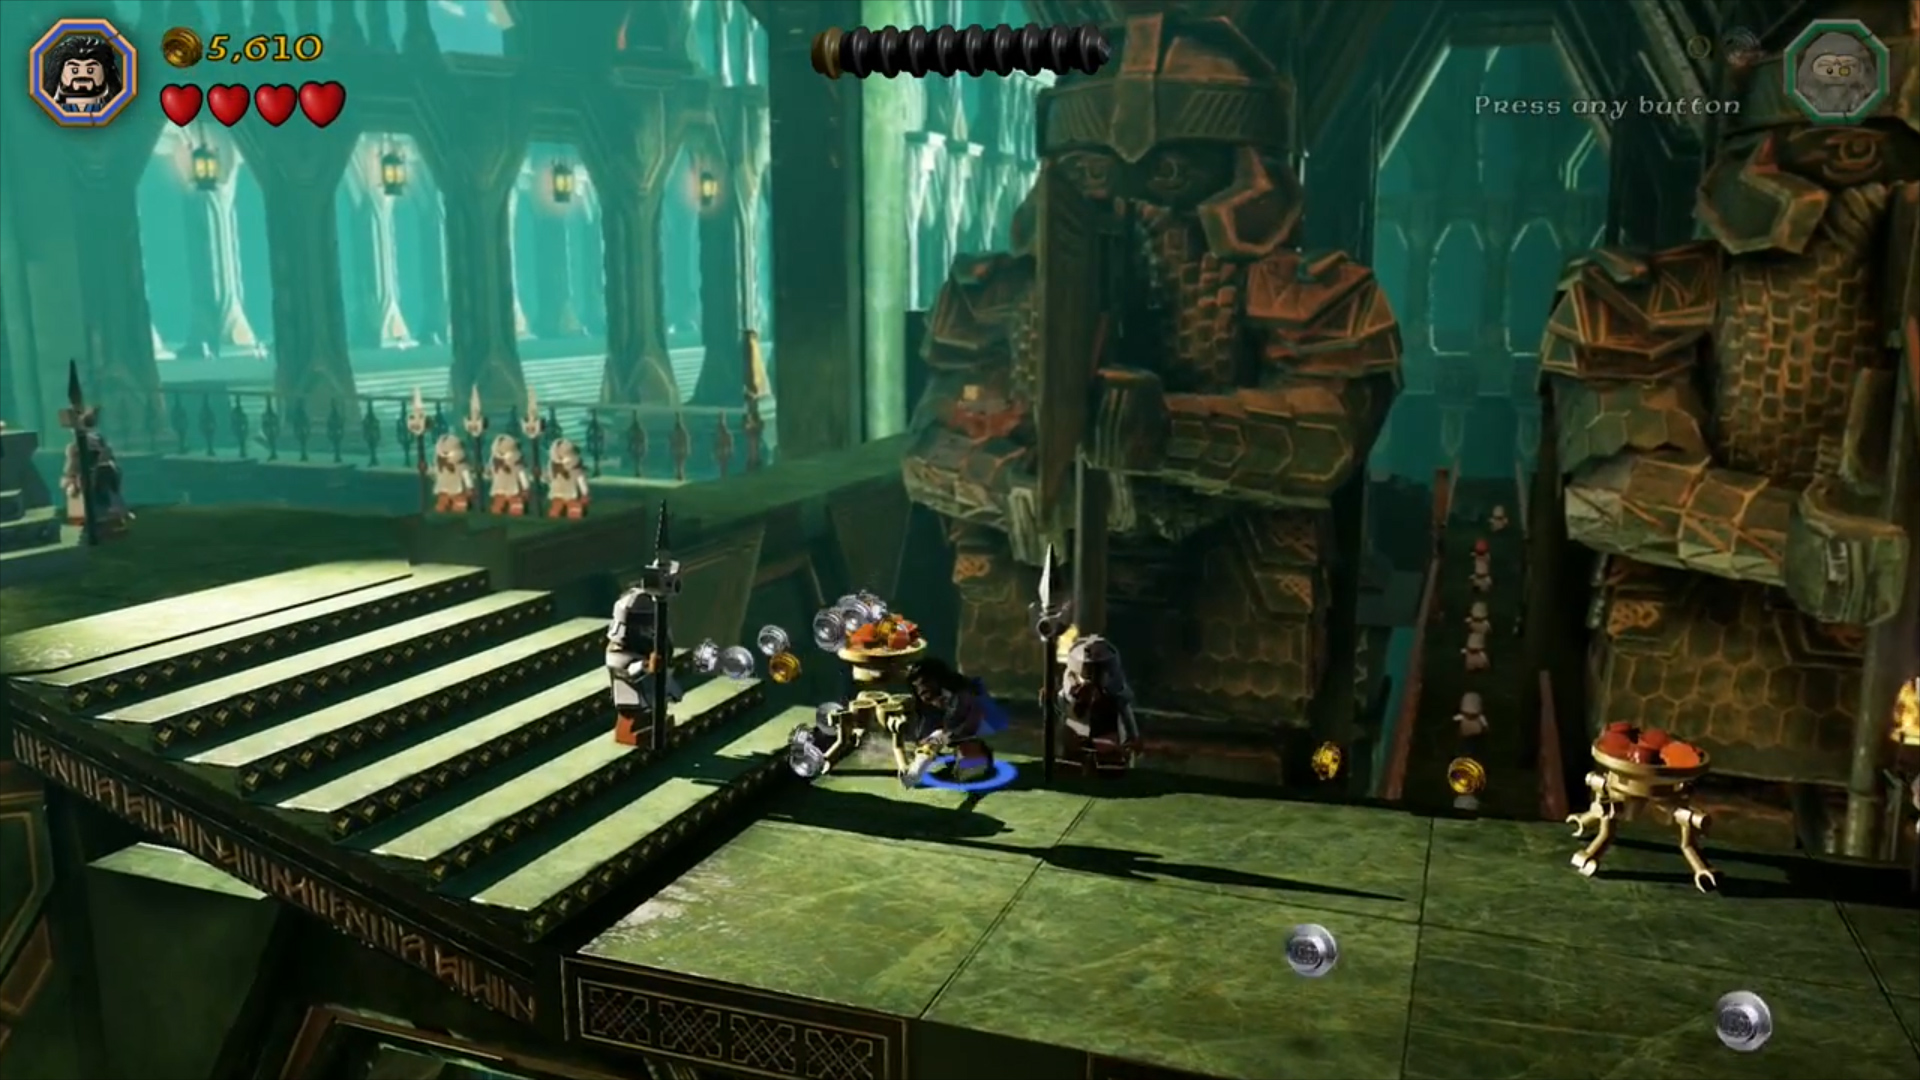 Lego The Hobbit Review PlayStation 3 Also On PlayStation 4 PS Vita Xbox 360 Xbox One Wii